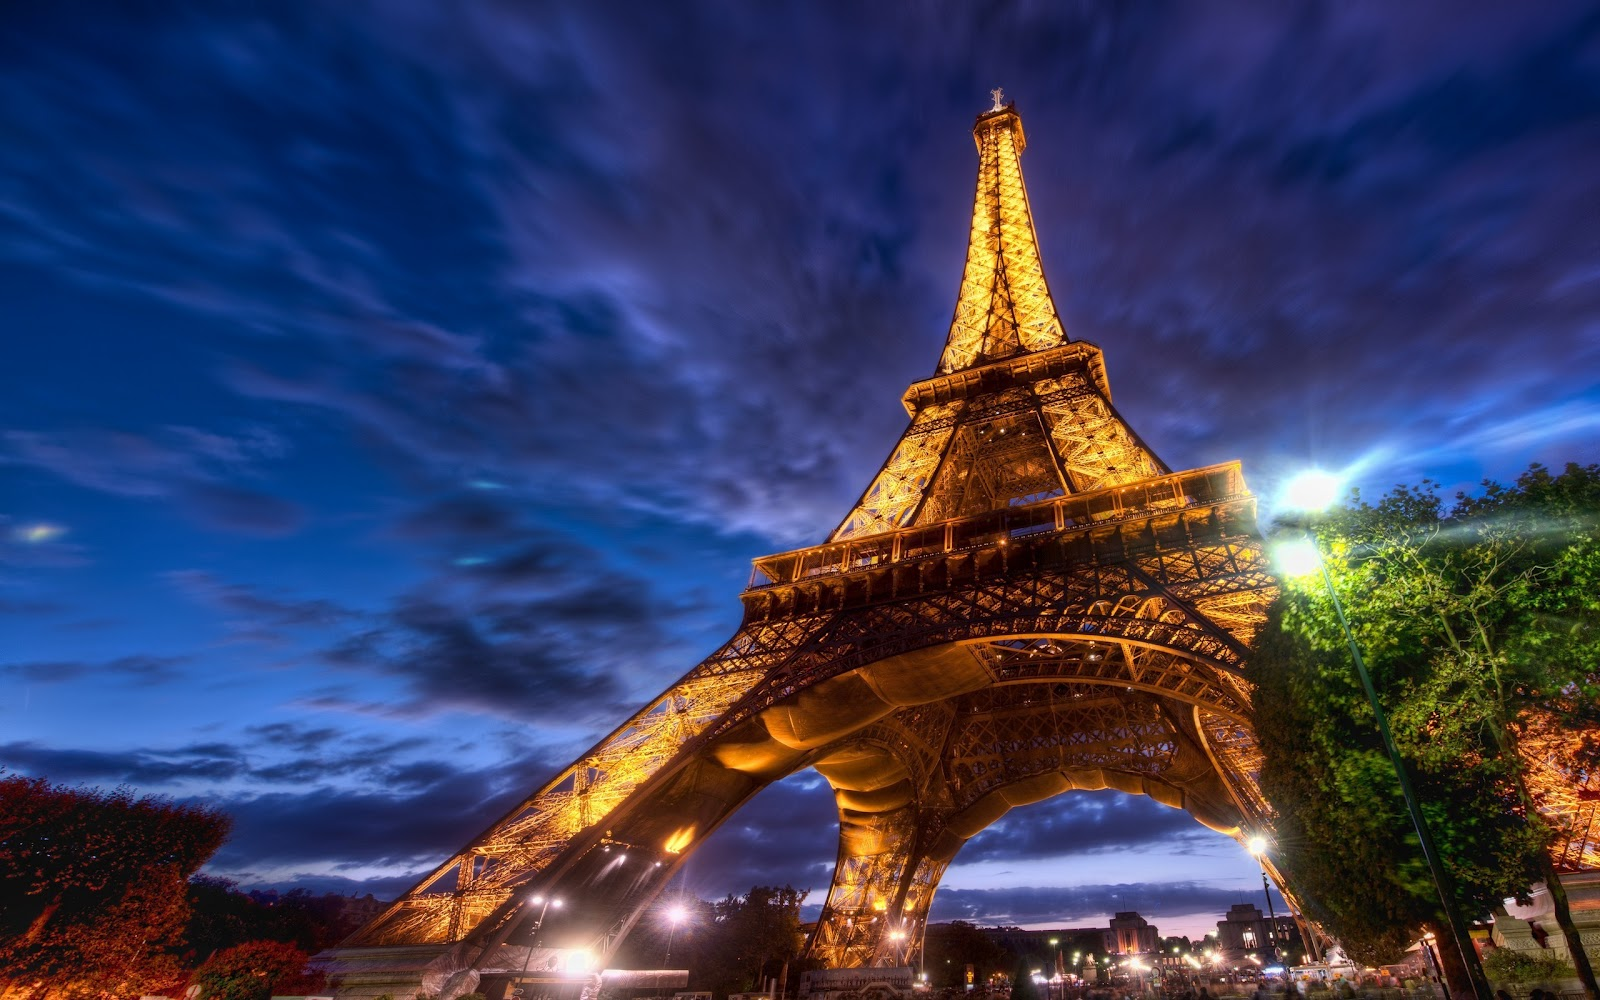 Paris hd wallpapers beautiful paris hd wallpapers beautiful paris